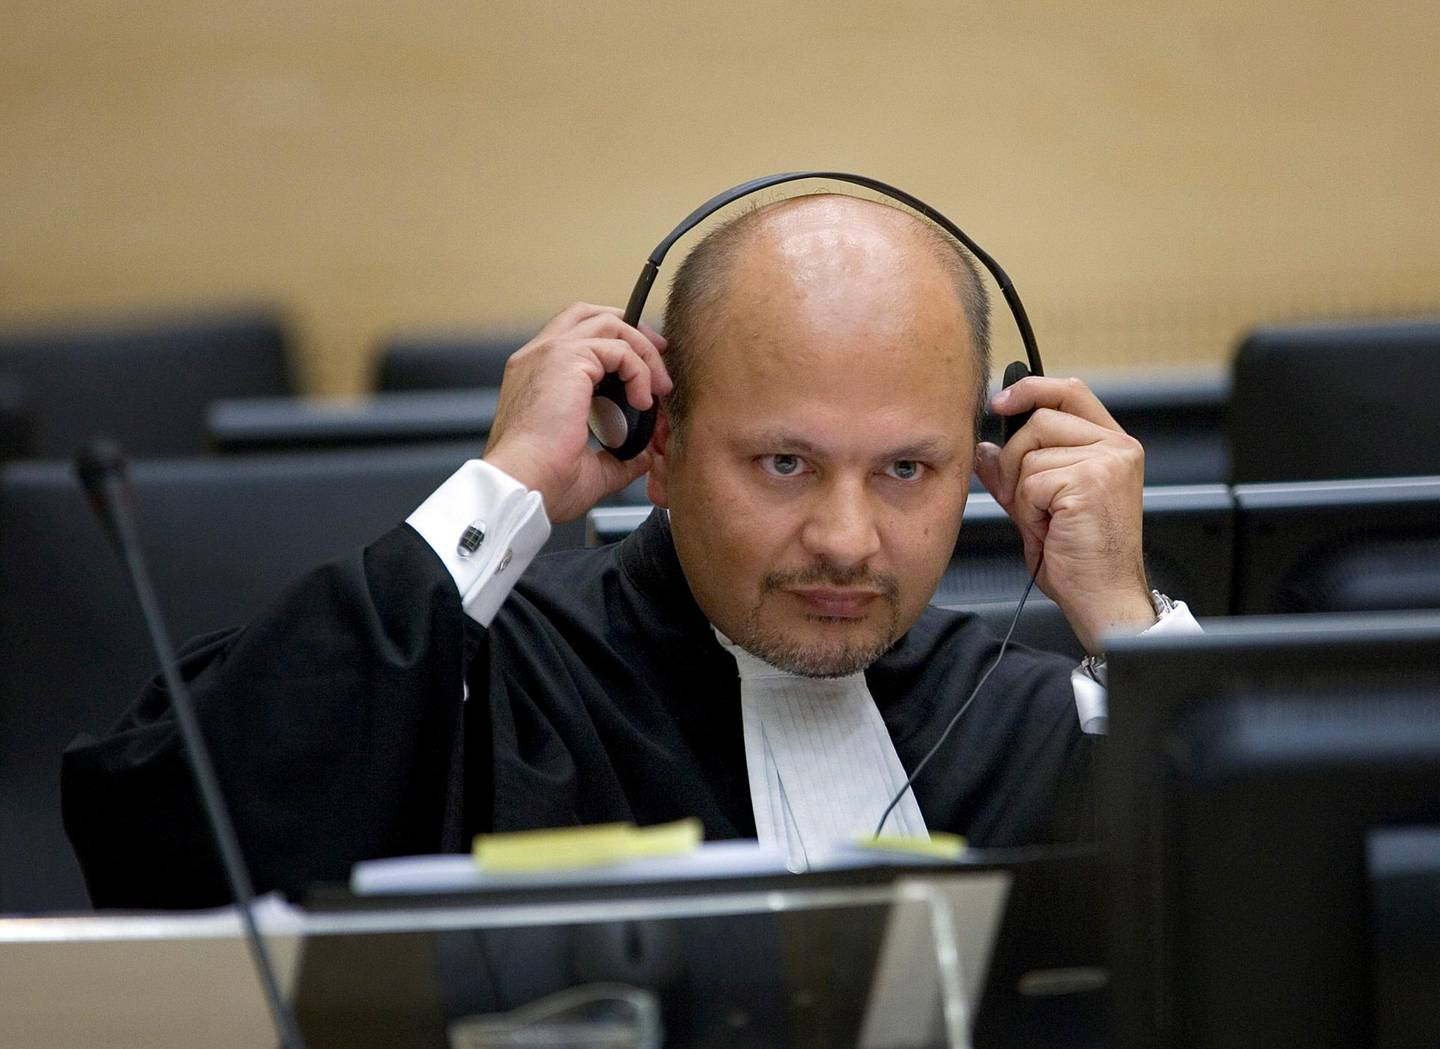 FILE  - In this Monday, June 4, 2007 file photo, lawyer Karim Khan adjust his headphones in the courtroom of the Special Court for Sierra Leone in The Hague, the Netherlands.  Khan is being sworn in Wednesday, June 16, 2021 as the new chief prosecutor of the International Criminal Court, taking leadership of a busy and financially stretched team that is probing alleged atrocities around the globe. Khan, a 51-year-old English lawyer, has years of experience in international lawyer as a prosecutor, investigator and defense attorney. He takes over from Fatou Bensouda of Gambia, whose nine-year term ended Tuesday. (AP Photo/Robert Vos, Pool, File)